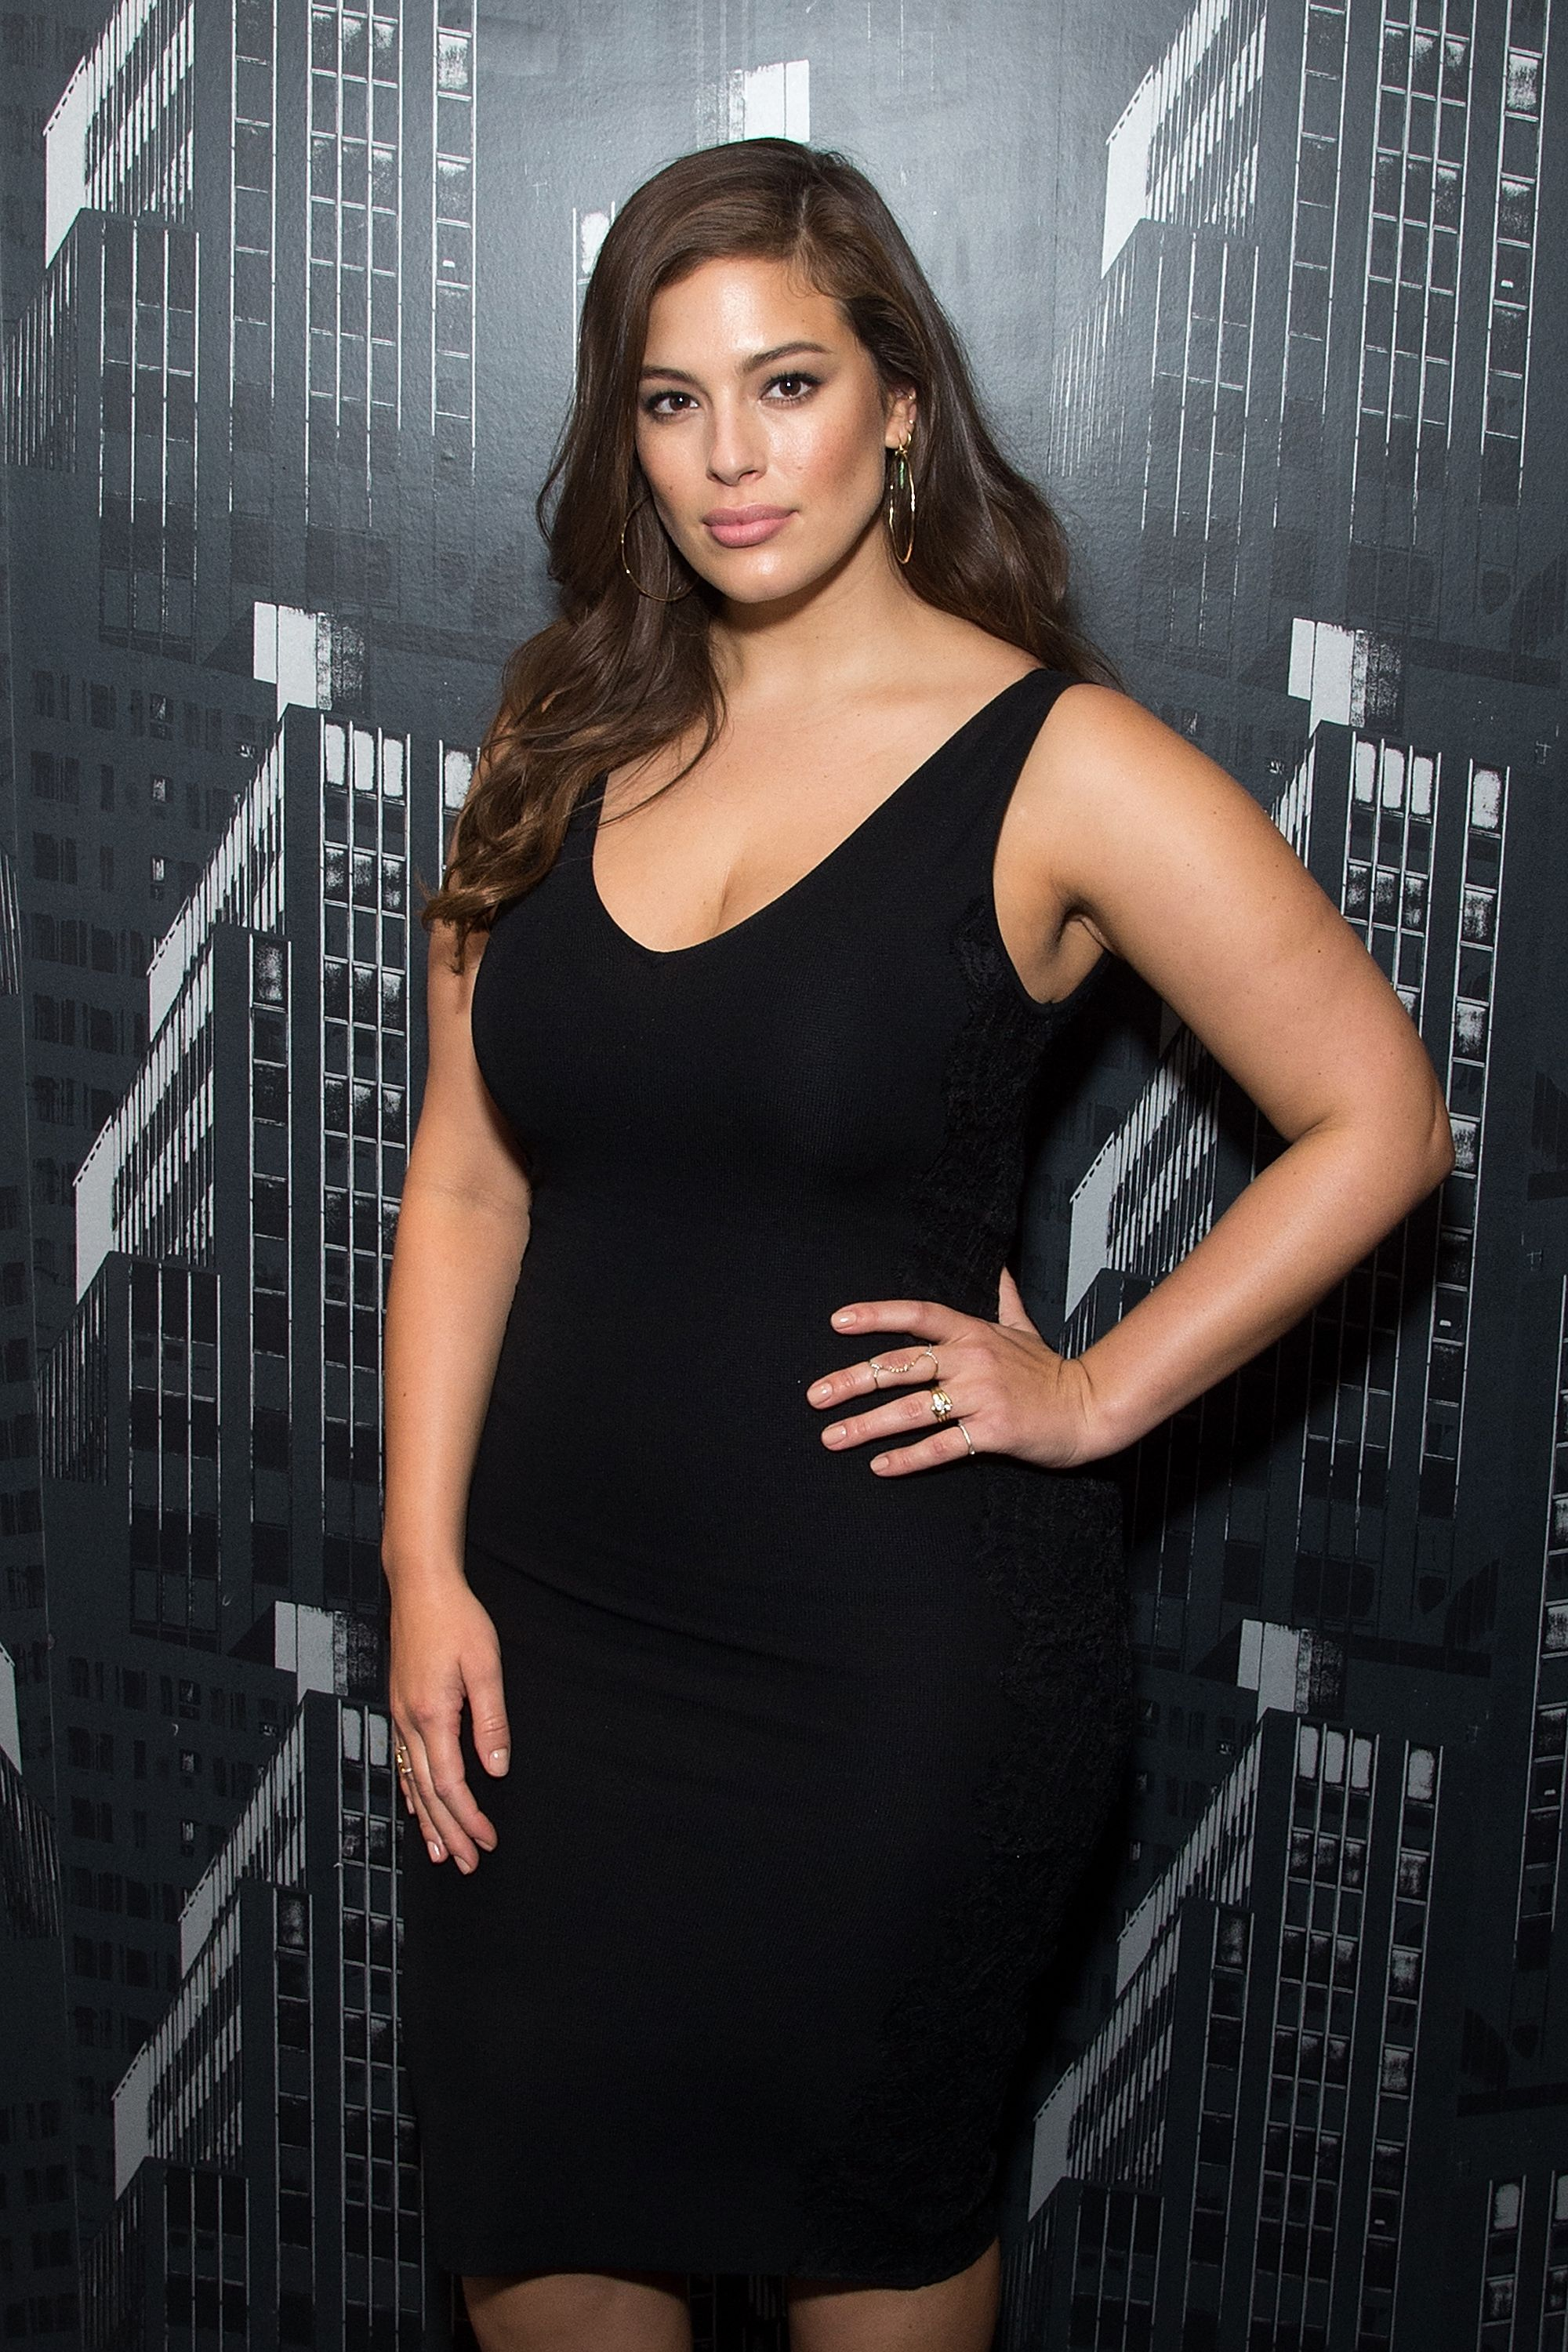 From Too Fat to Too Skinny: Ashley Graham Has a Powerful Message for Anyone Trying to Police Her Body Size